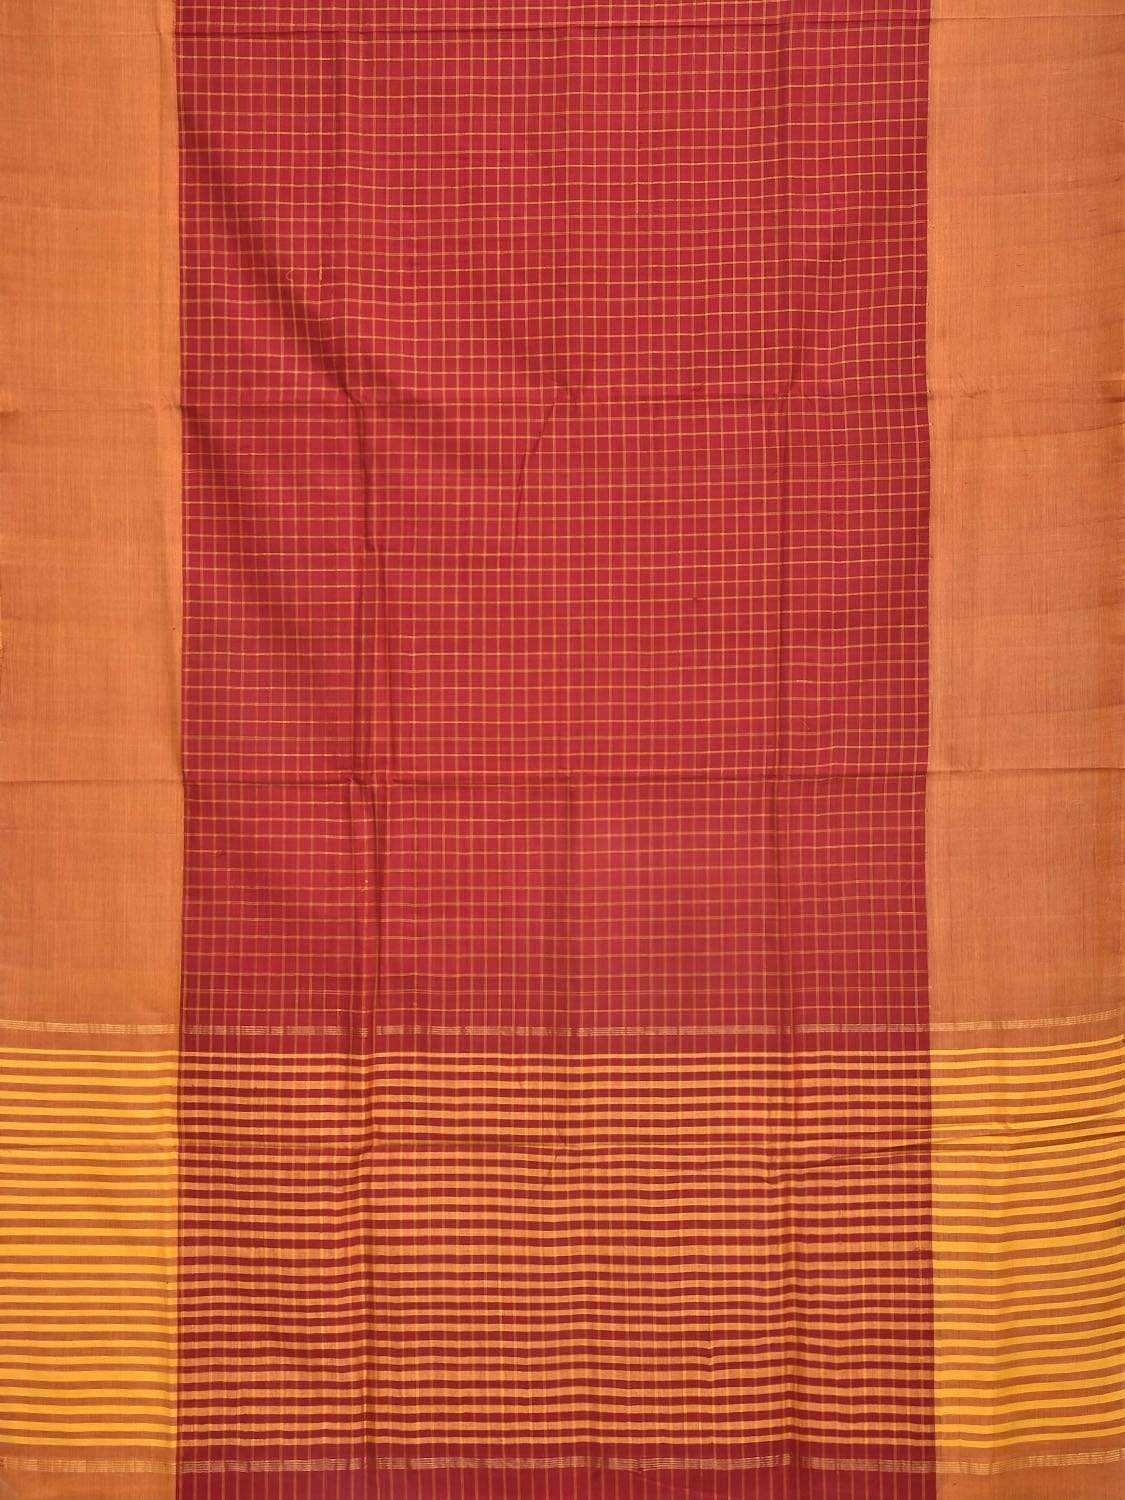 Red Cotton Handloom Saree with All Over Checks Design o0272